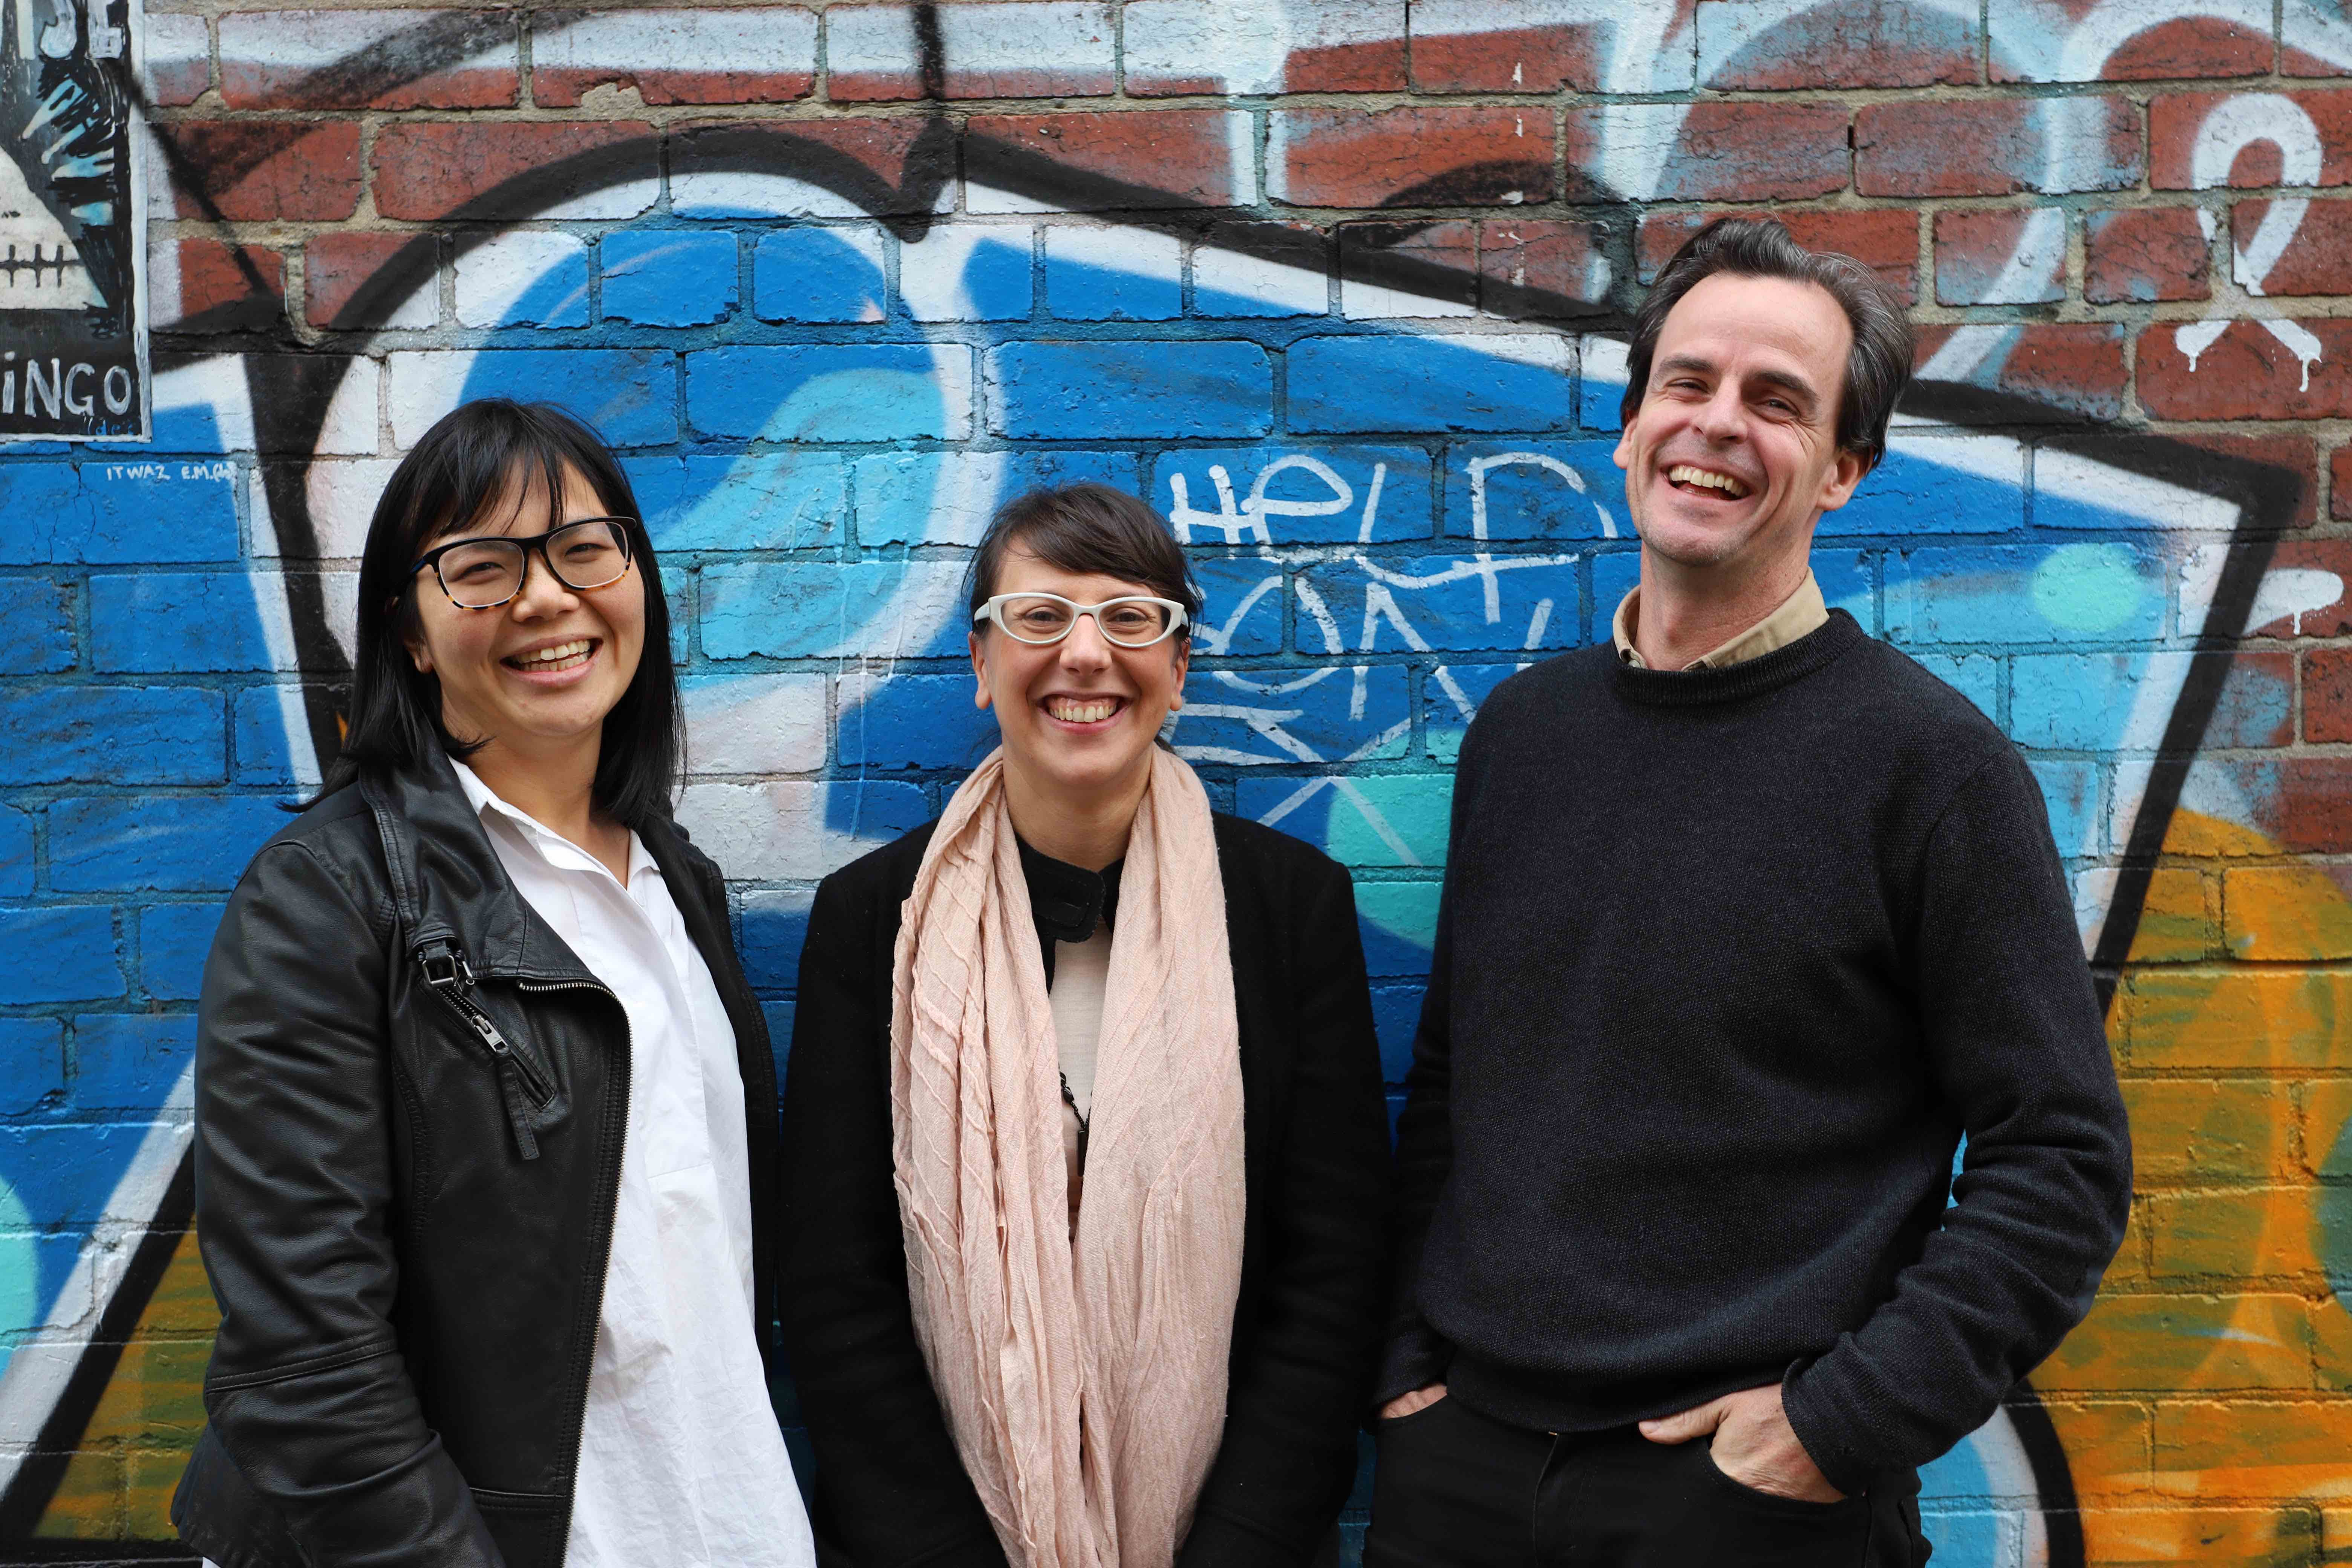 Melbourne agency Ellis Jones repositions to reflect growth in social impact and innovation